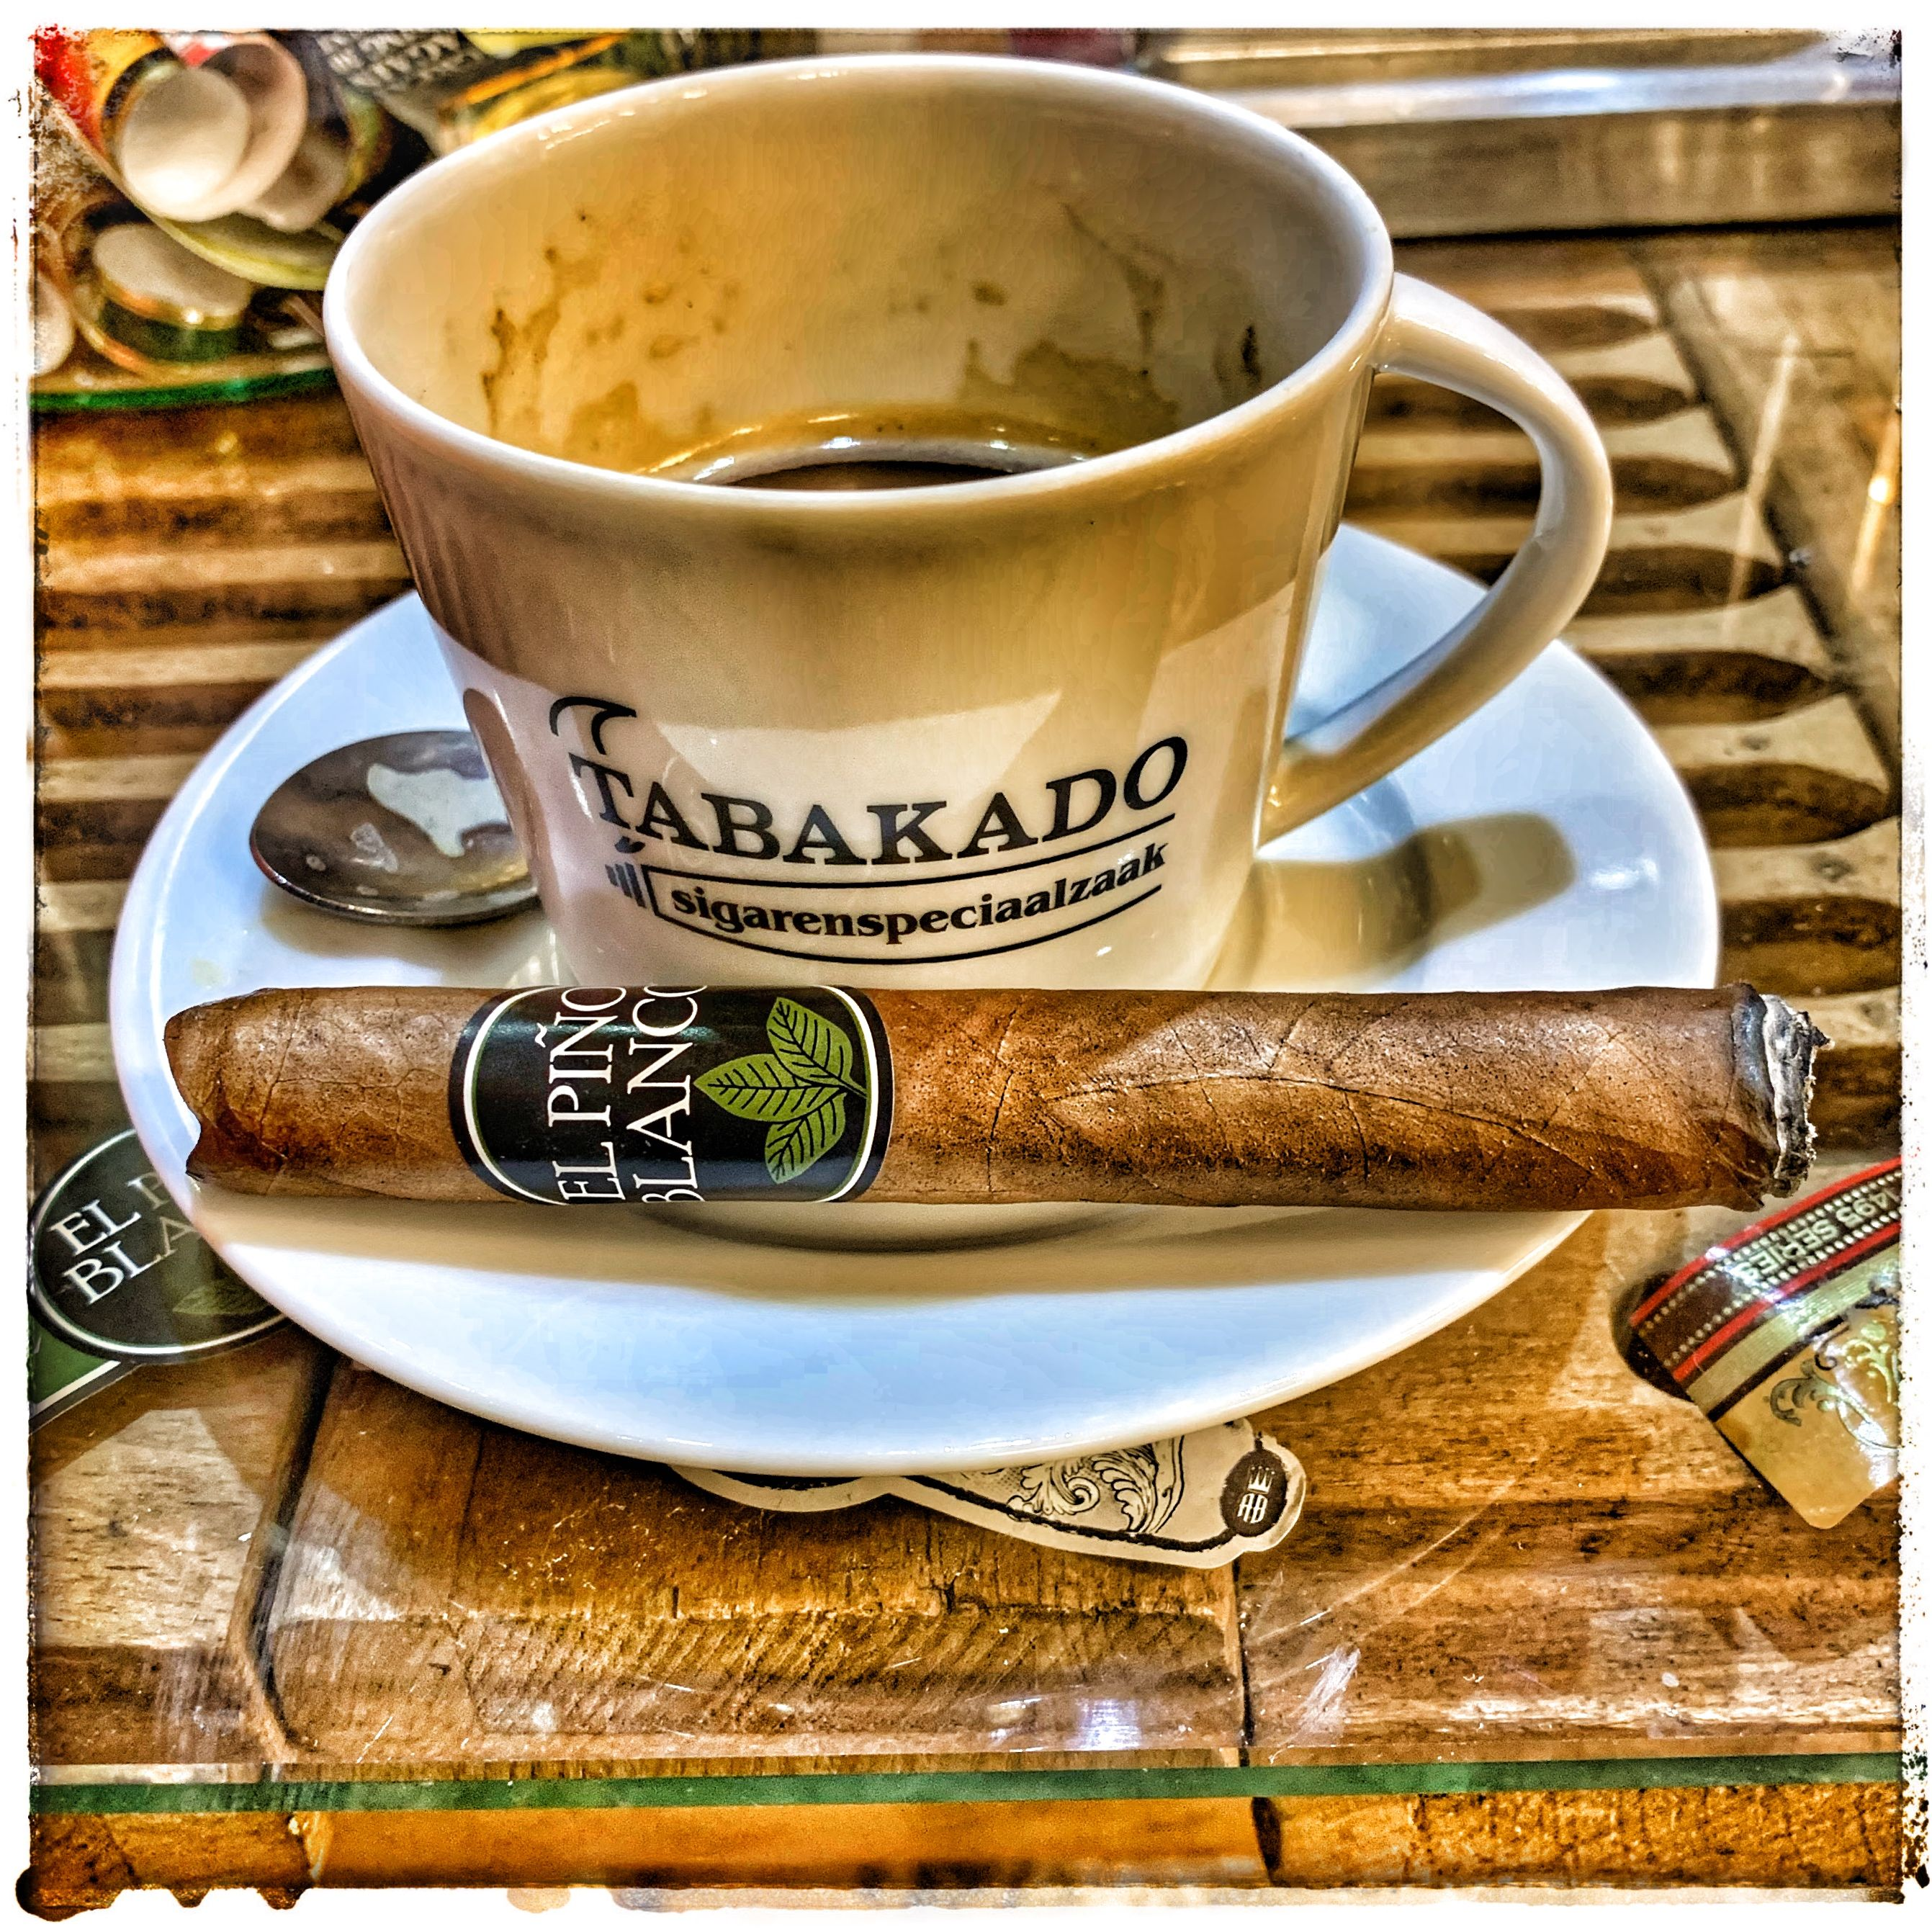 Pin by Mark Cheese on Mi Fumar Good cigars, Coffee time